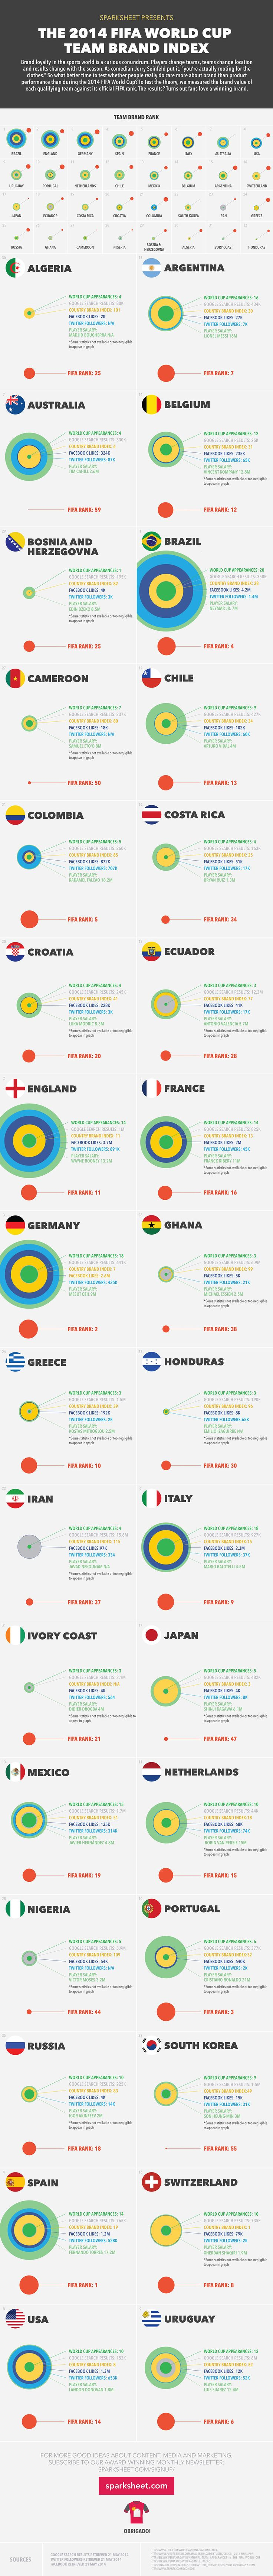 2014 FIFA World Cup Teams' Brand Ranking | #Infographic repinned by @Piktochart | Create yours at www.piktochart.com